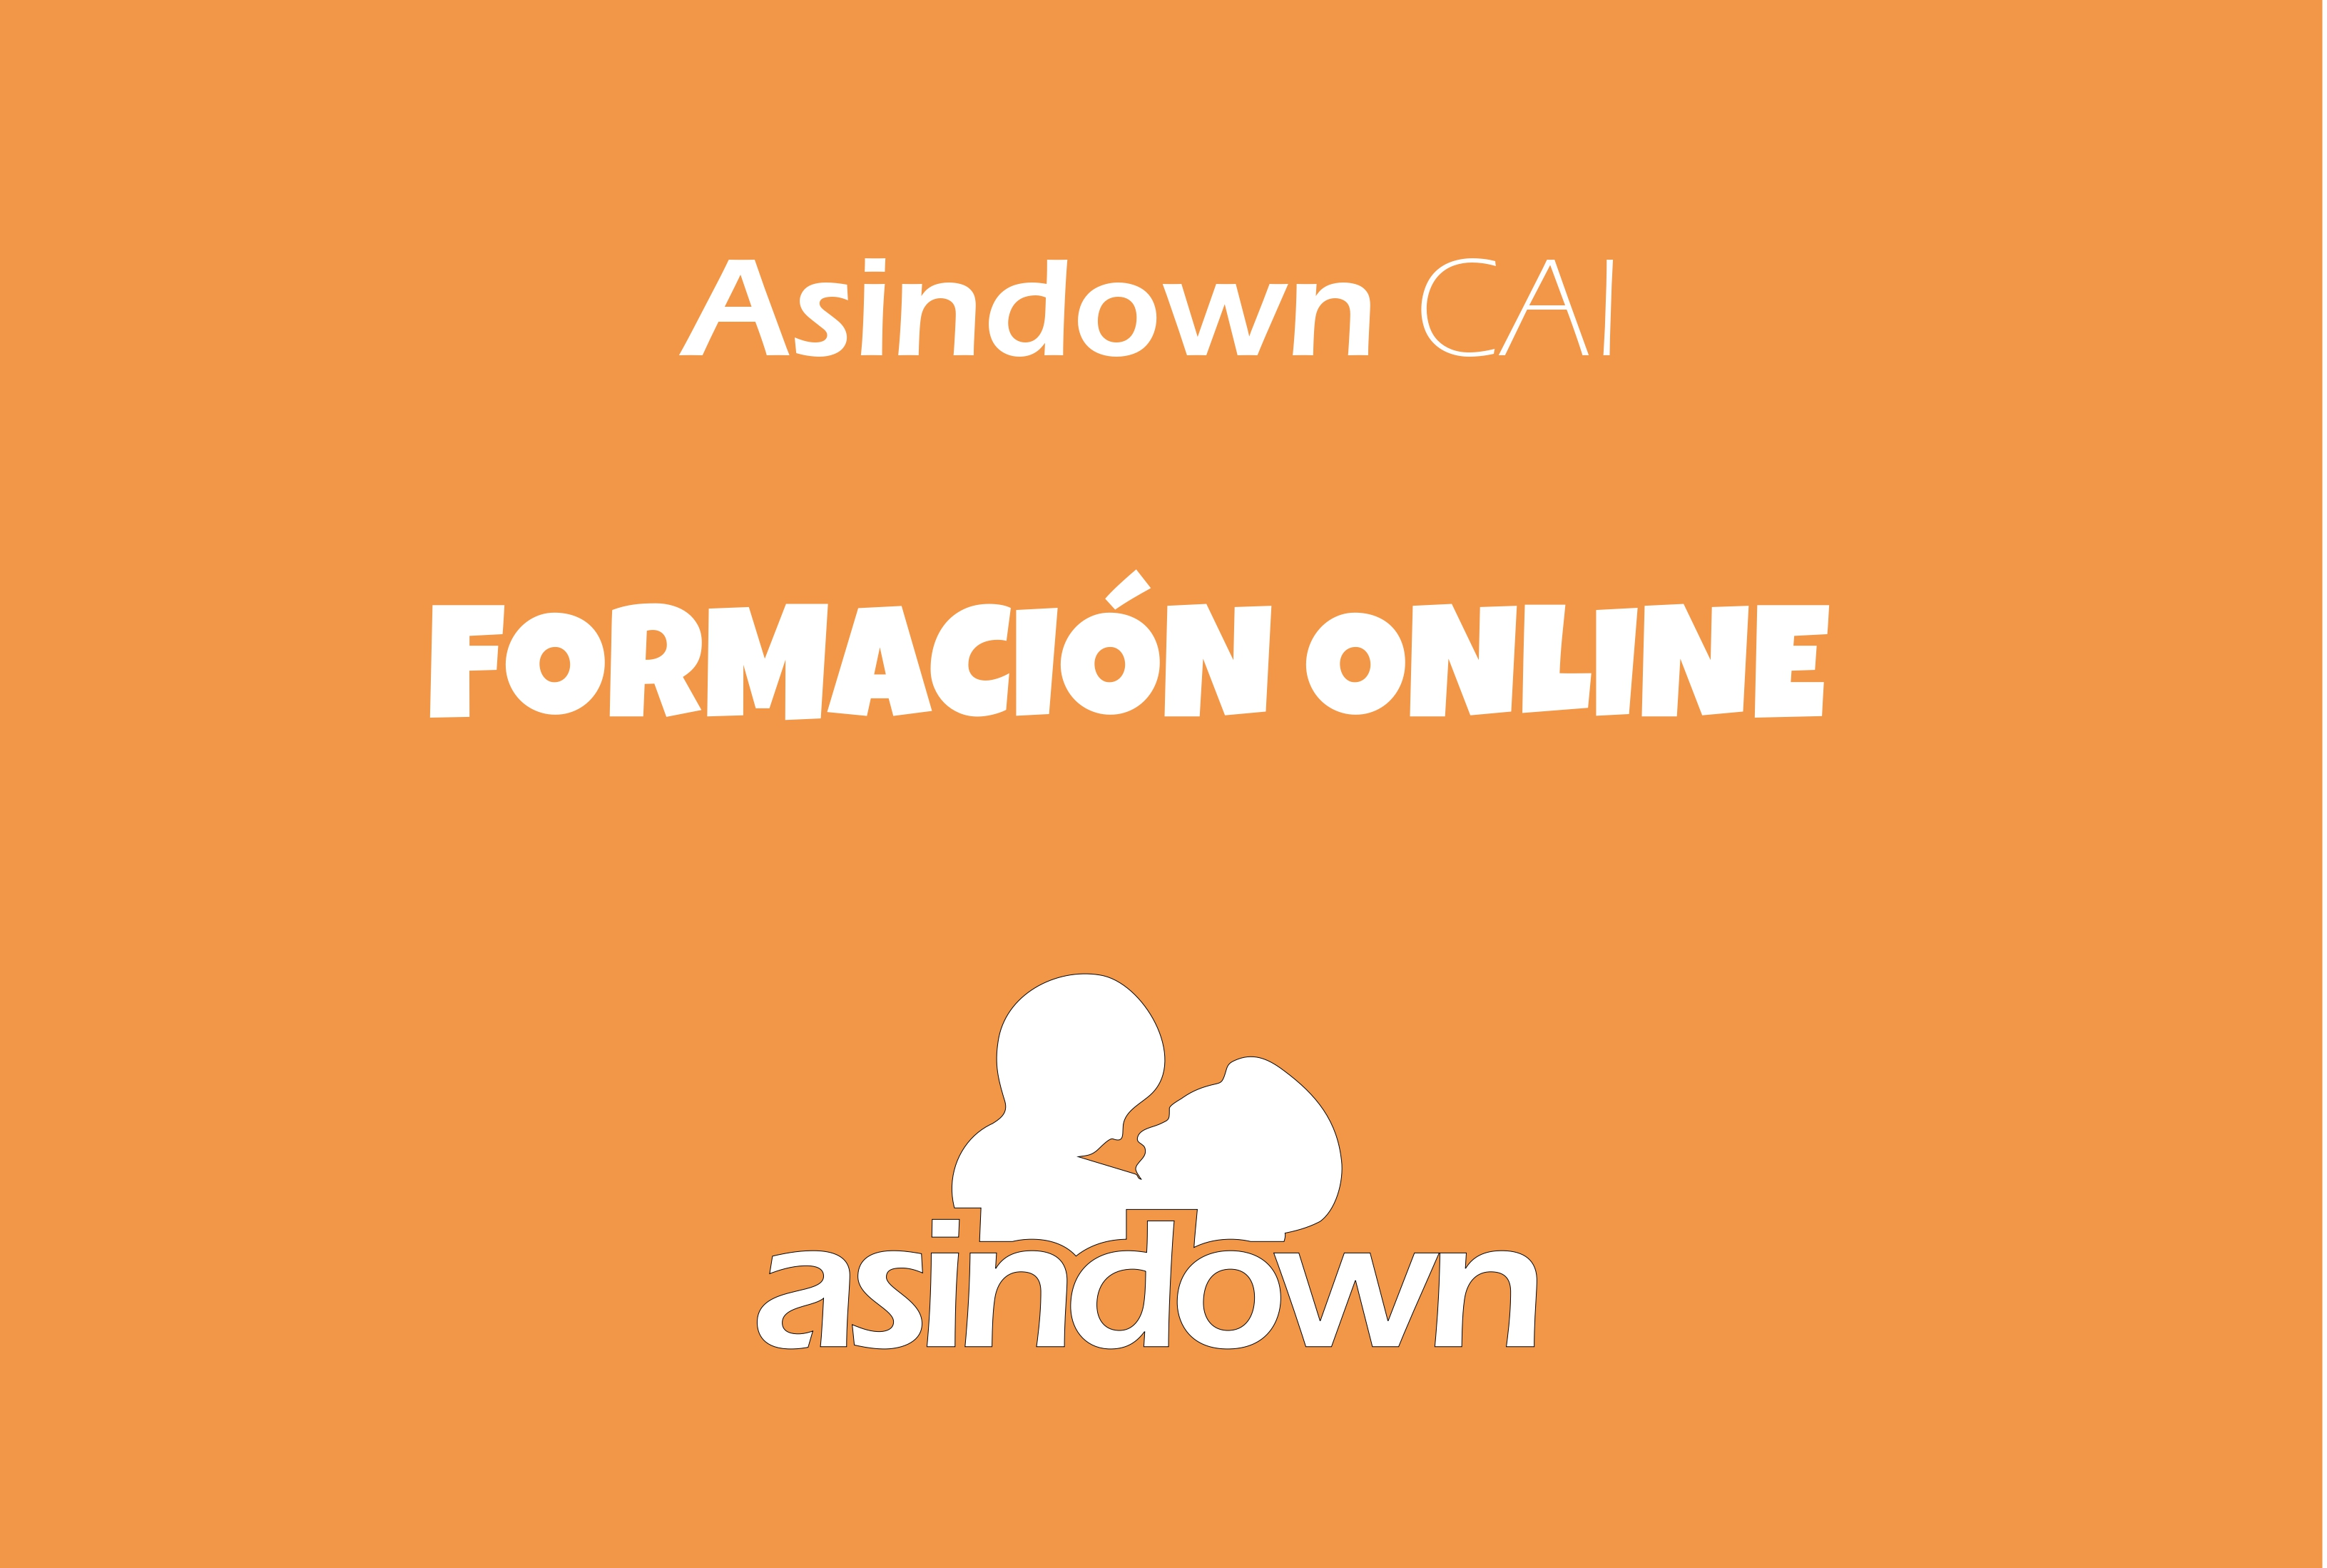 ASINDOWN CAI